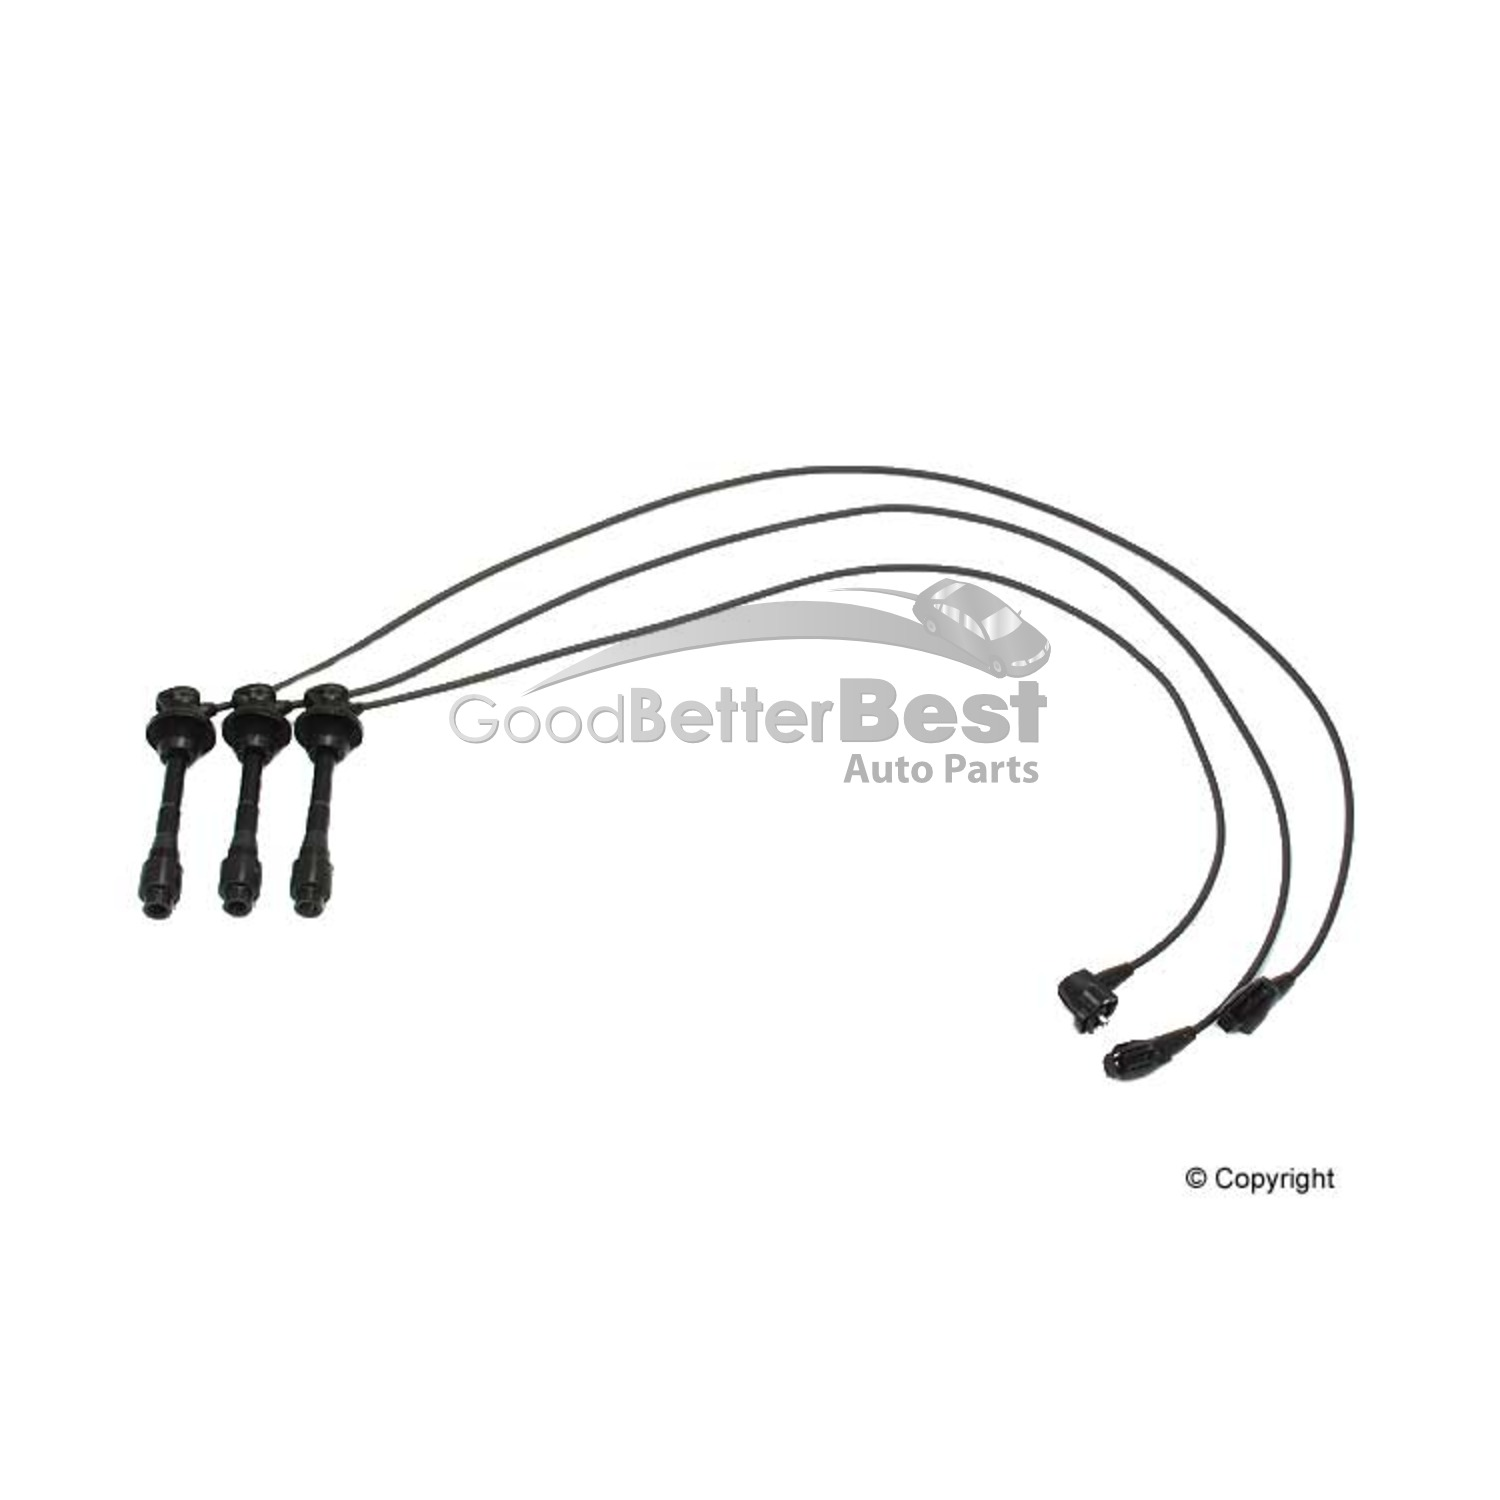 New Opparts Spark Plug Wire Set 35pf For